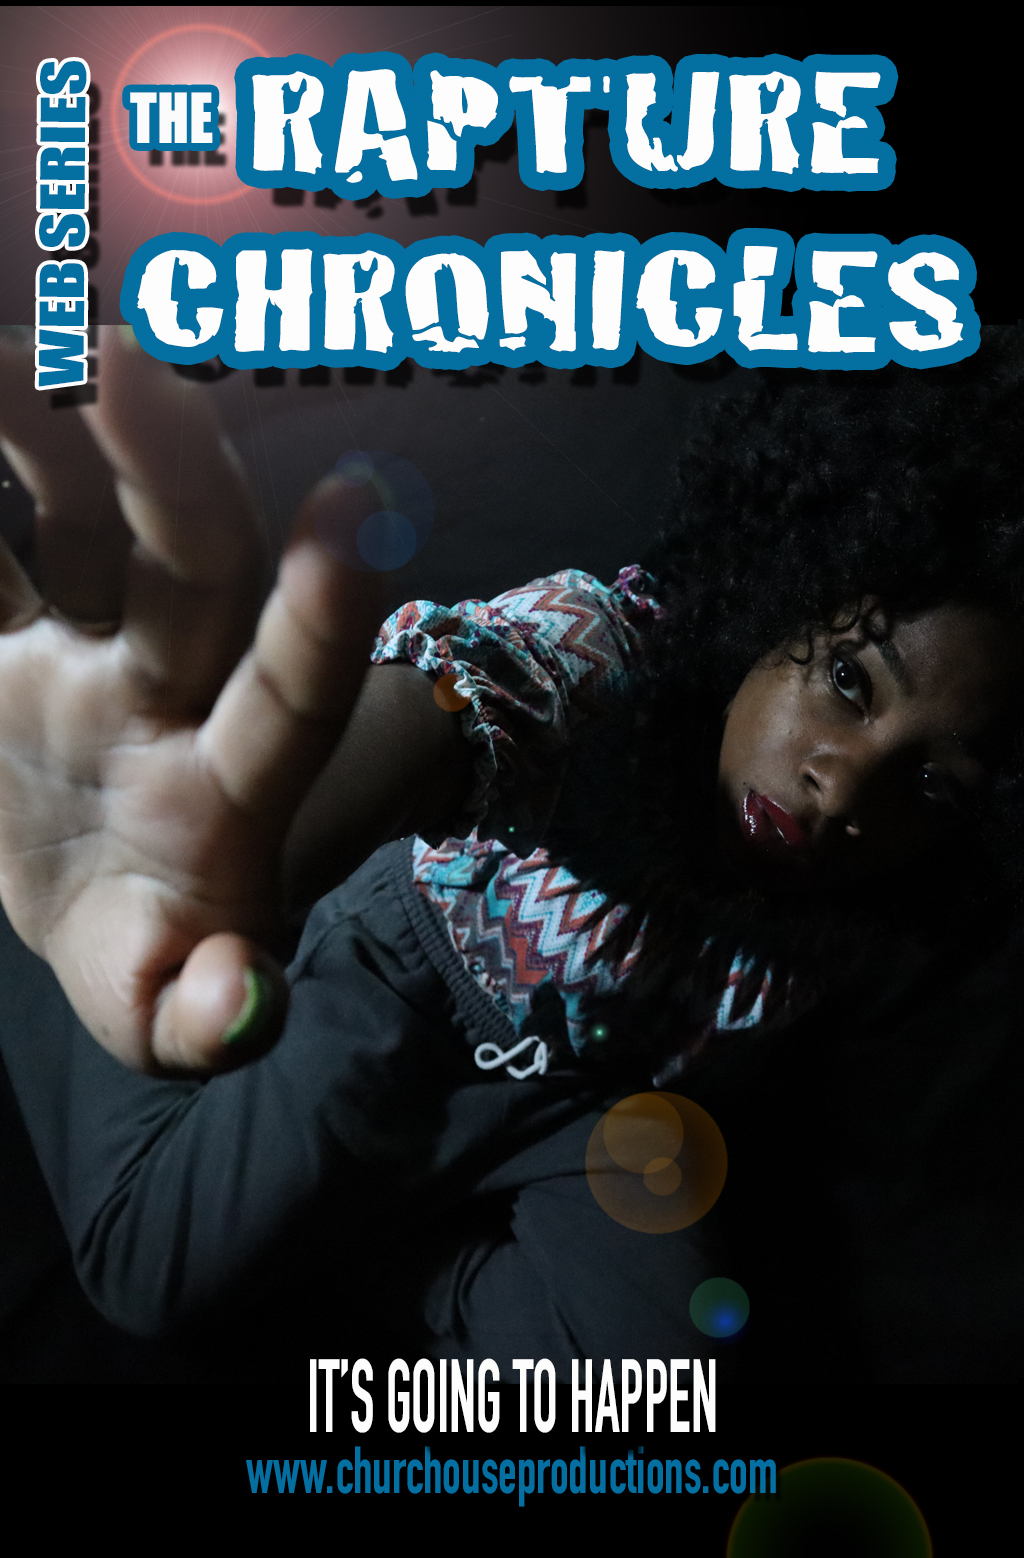 The Rapture Chronicles – Churchouse Productions